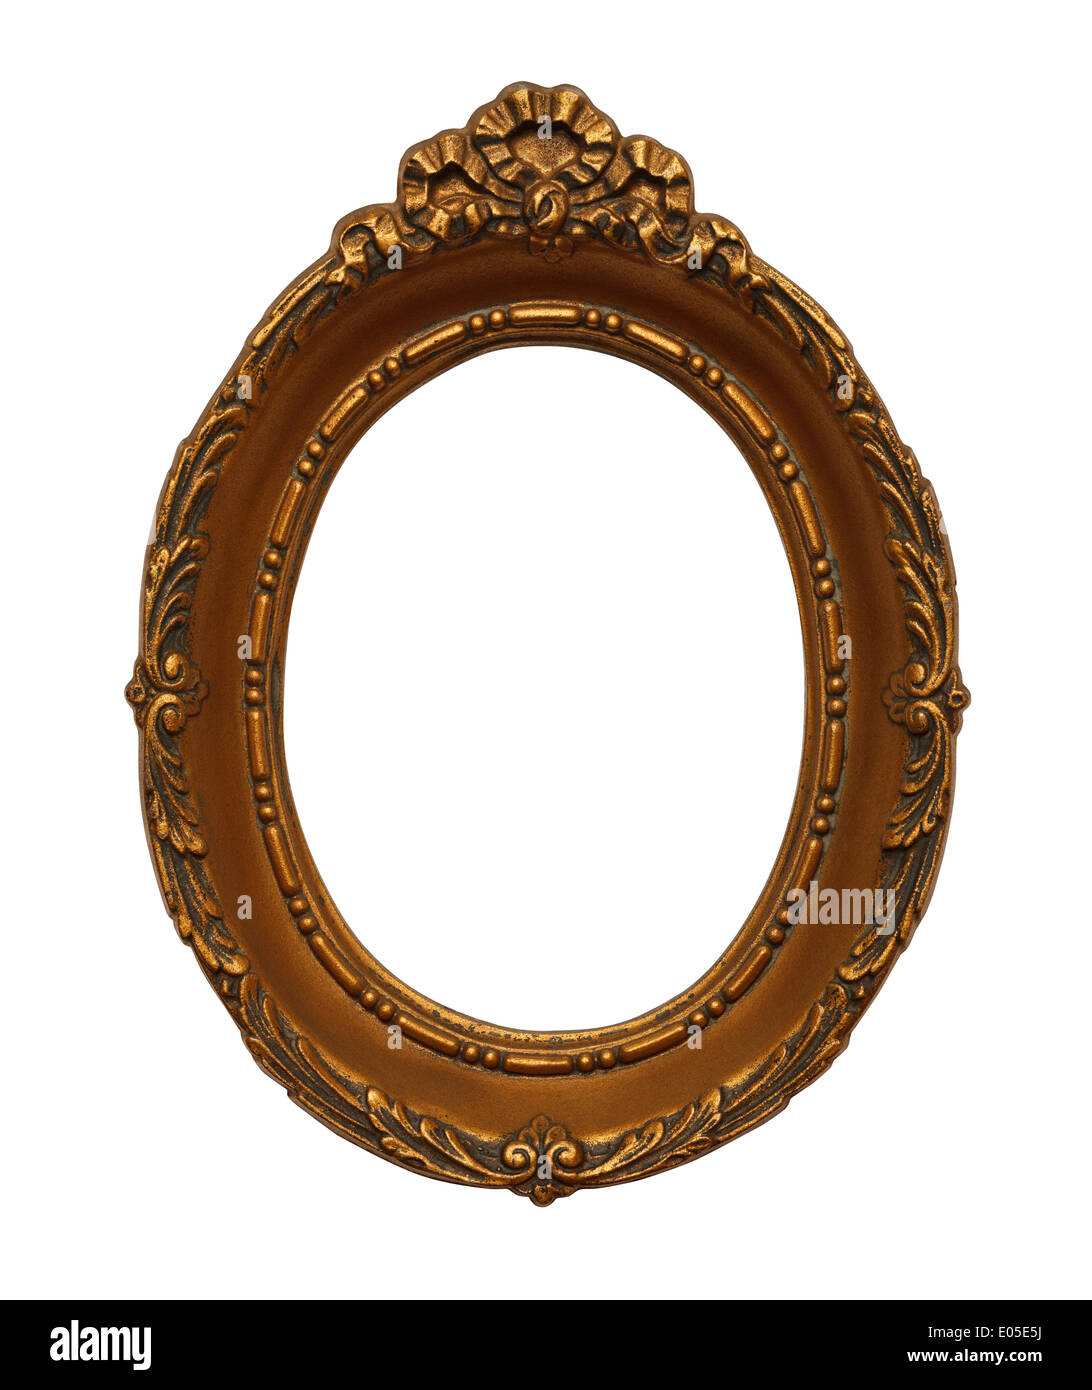 Round Ornate Picture Frame Stock Photos & Round Ornate Picture Frame ...